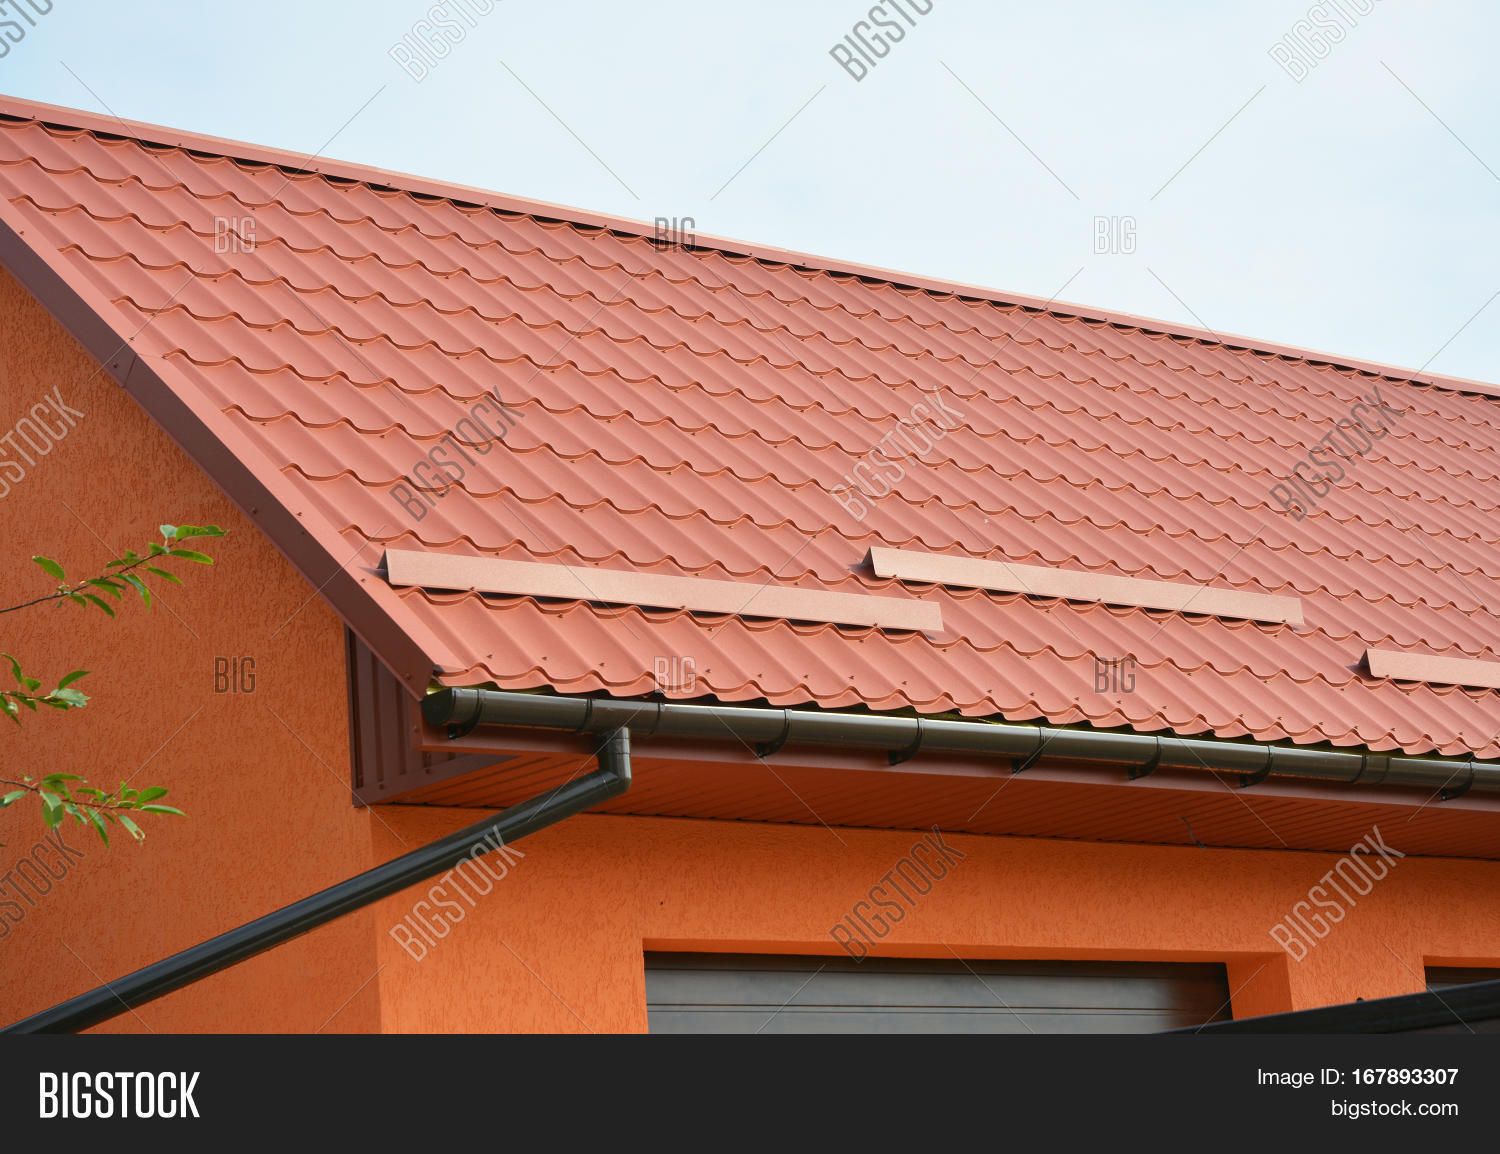 Building Modern House Construction with garage metal roof rain gutter pipeline system and roof protection from & Building Modern House Construction Image u0026 Photo | Bigstock memphite.com